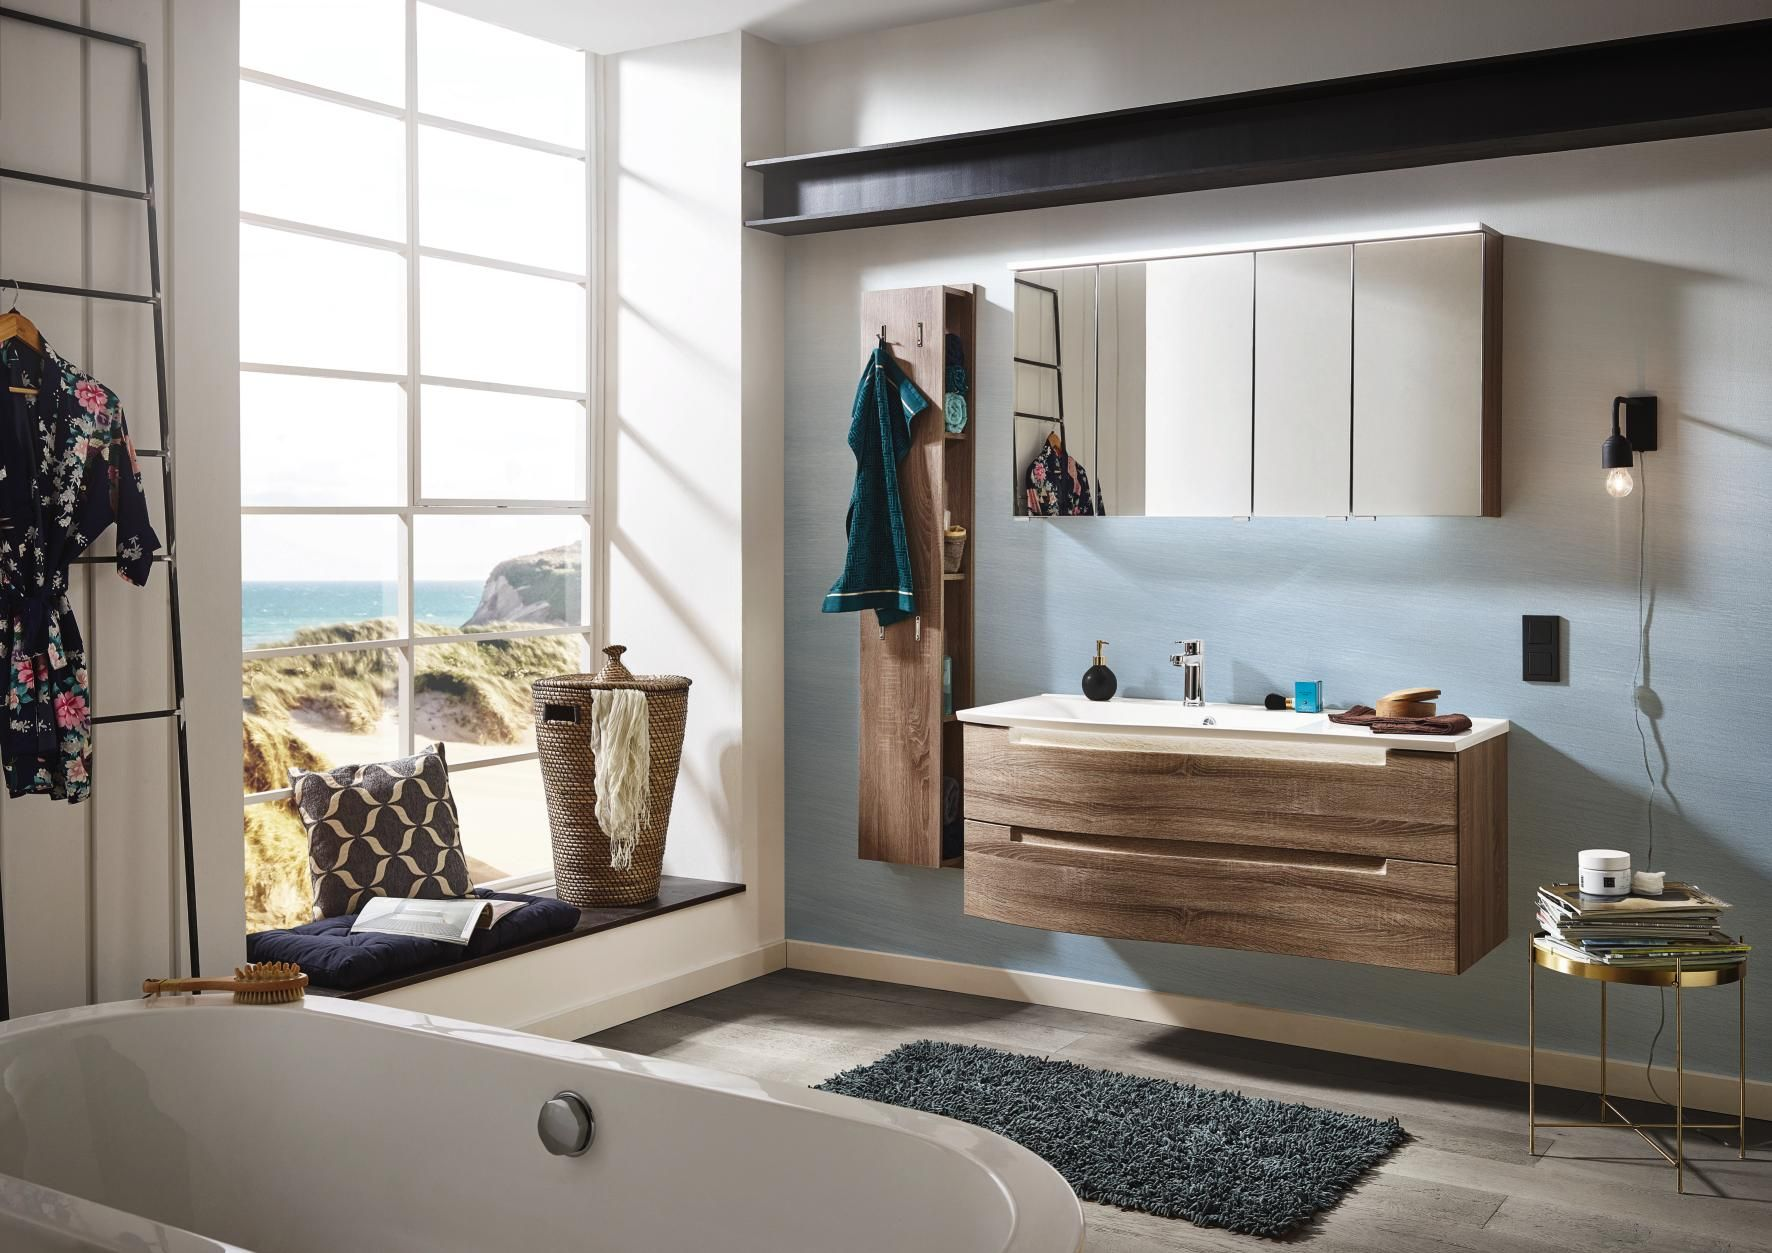 Badezimmer | Badezimmer | Bathtub, Bathroom und Beach House